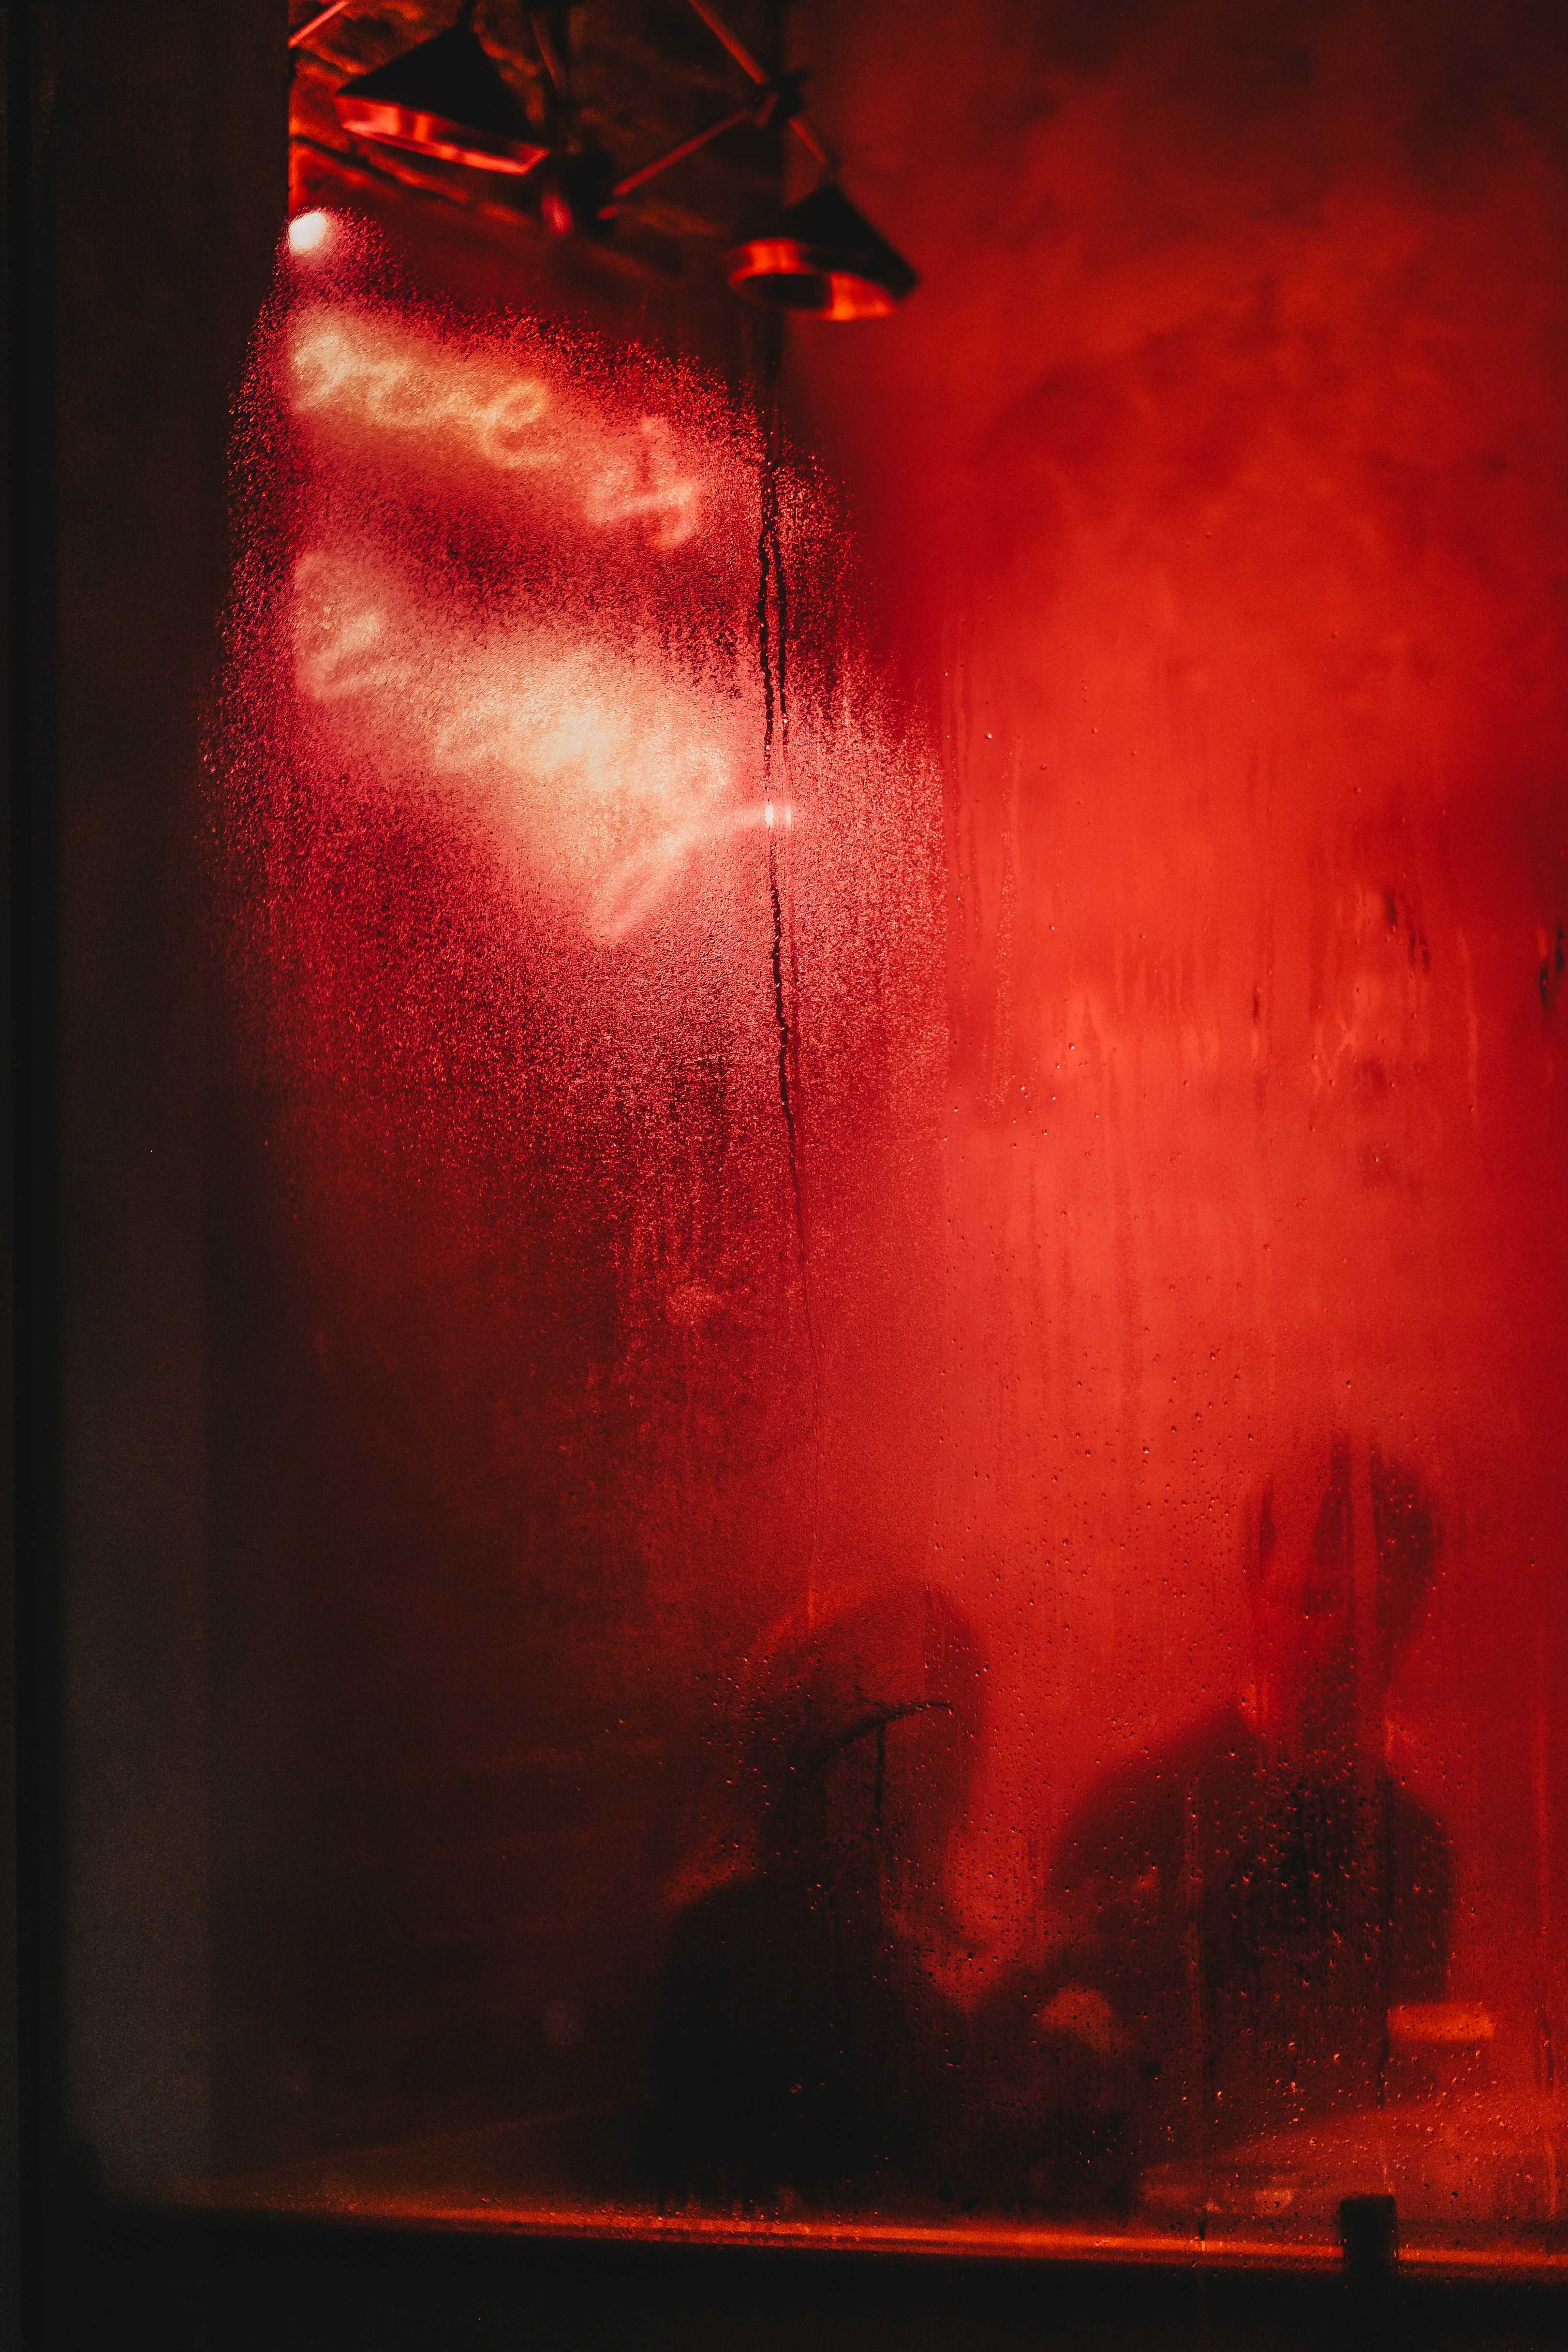 man and woman sitting at a table behind red glass window